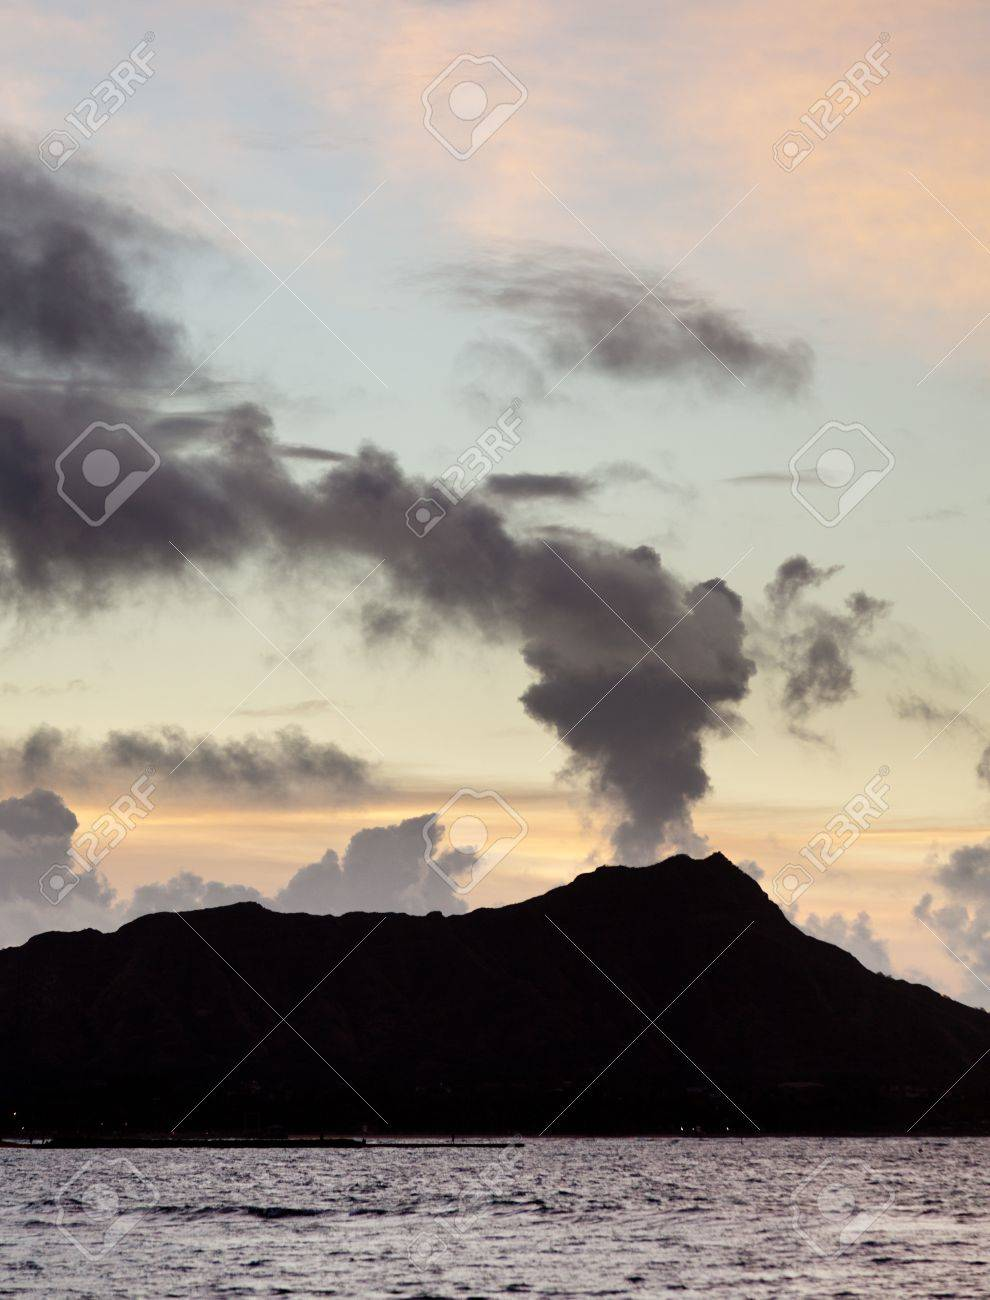 Clouds appear to be smoke from volcano of Diamond Head at sunrise in Hawaii Stock Photo - 12451430